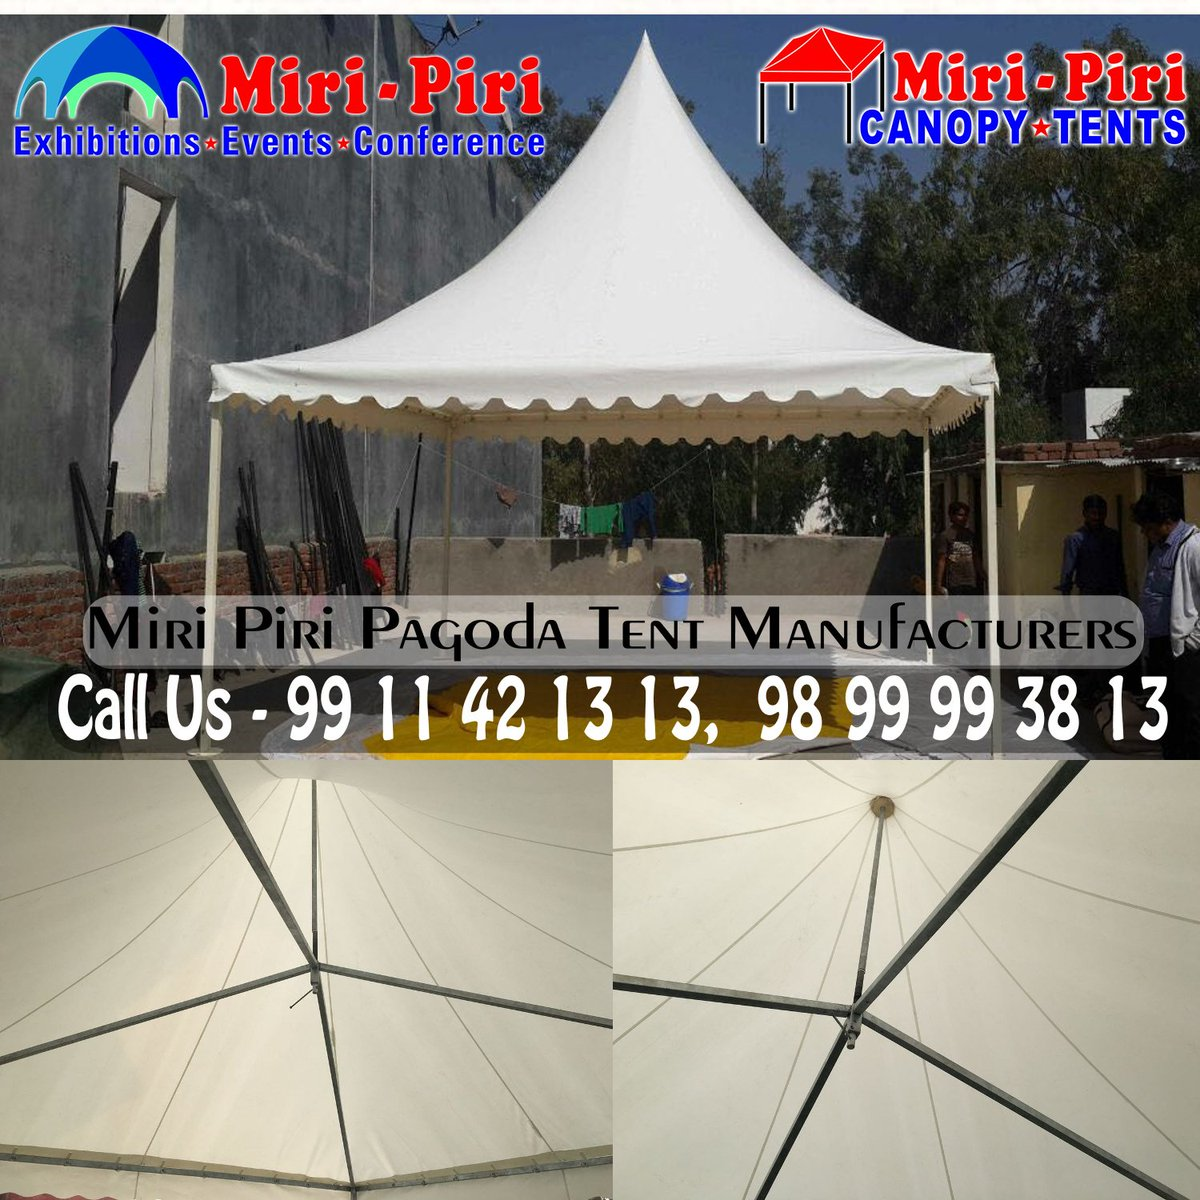 ... Exhibitions Trade Fairs - Manufacturers Suppliers in Delhi Supply all Over India. Ph - 9911421313 9899993813 for more details so please CLICK HERE ... & Pagoda Tents Manufacturers Suppliers in India (@Pagoda_Tents ...